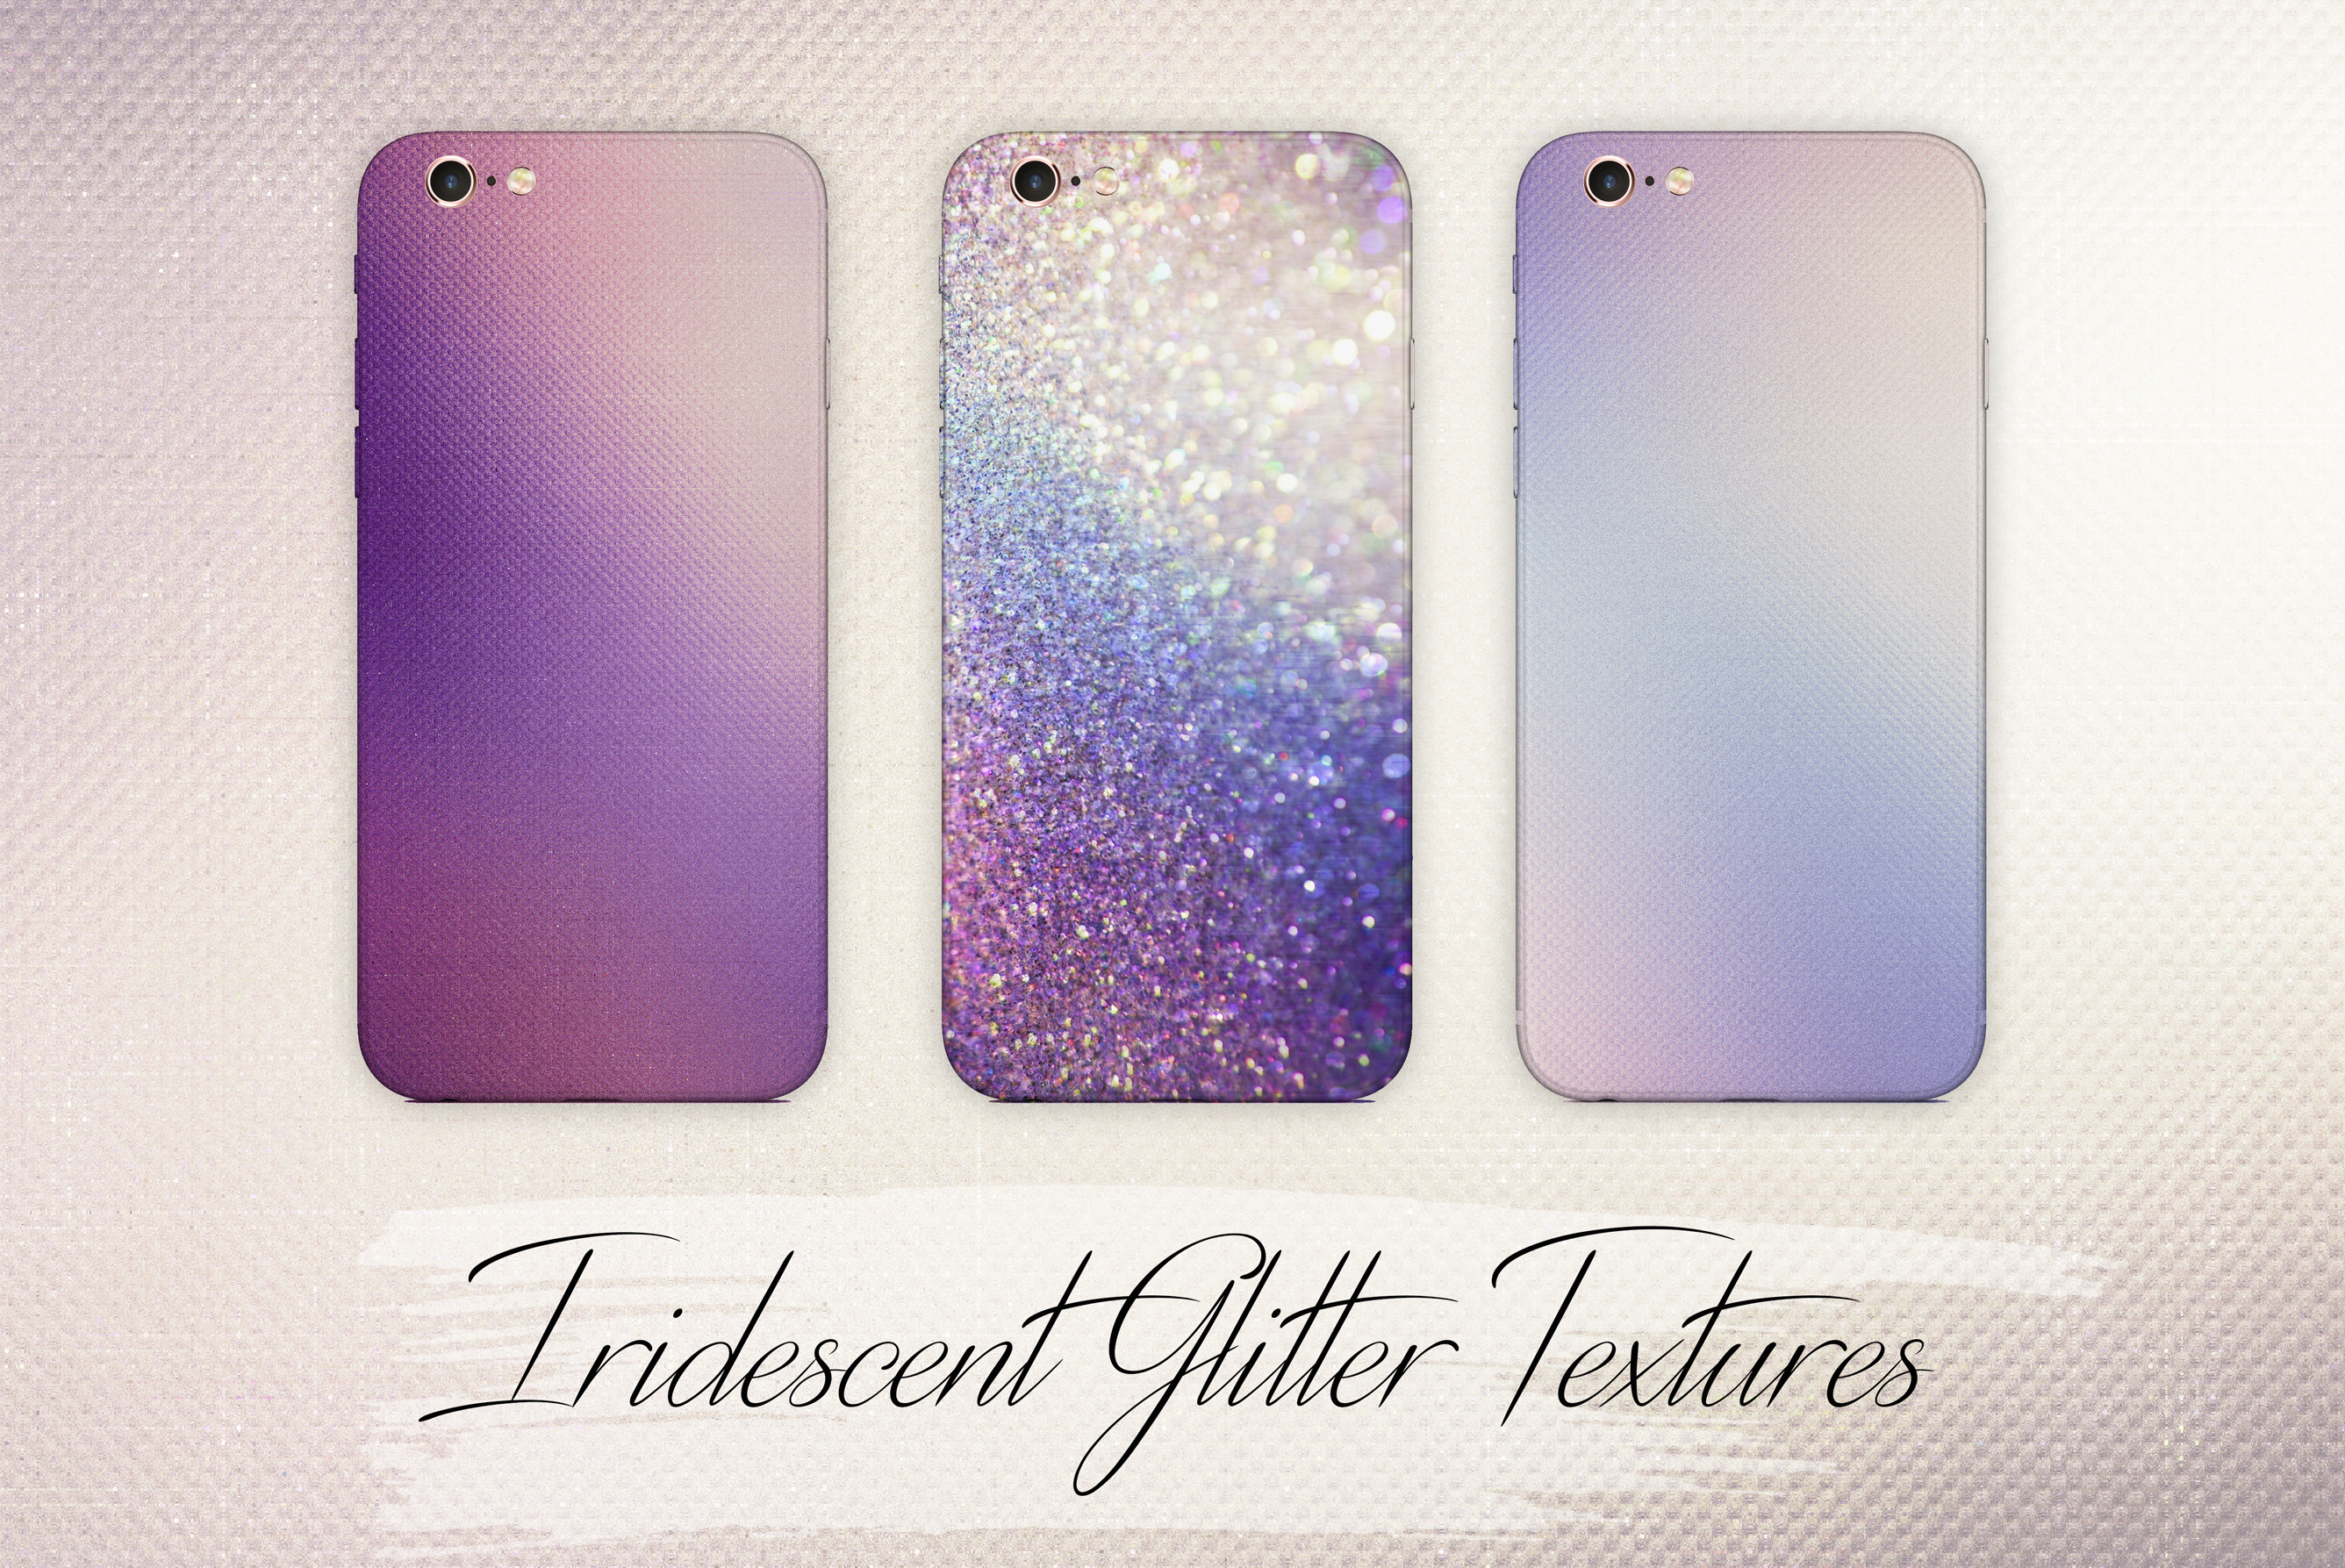 Iridescent and Glitter 180 Textures BUNDLE example image 8